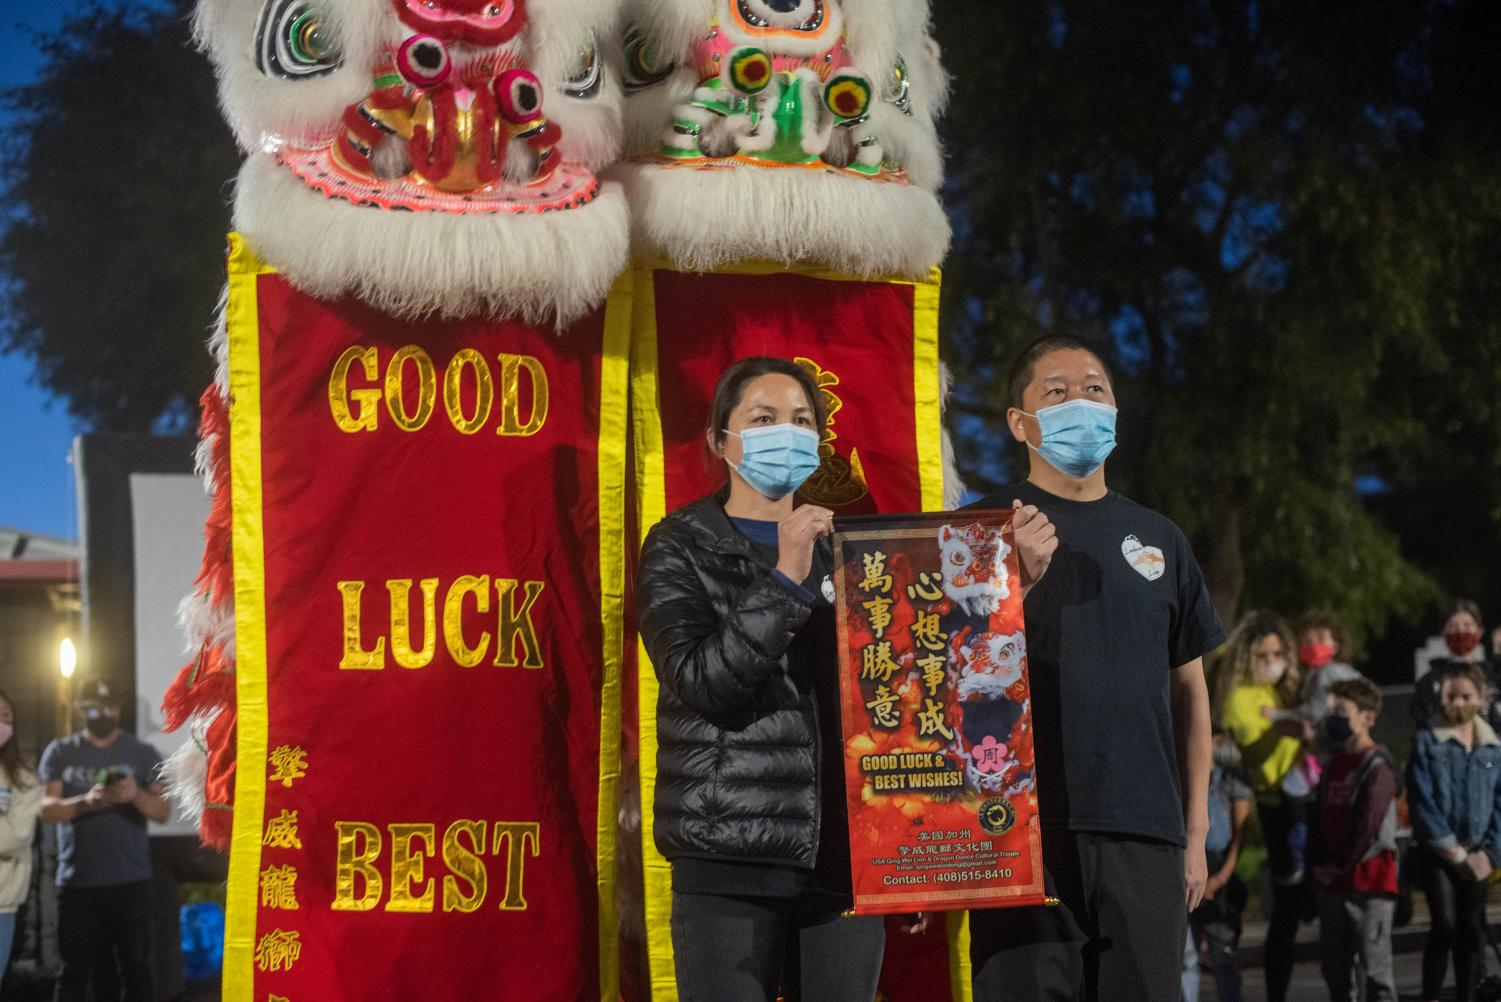 """This lantern festival was hosted to share Chinese culture and raise awareness towards anti-Asian attacks in the community. The Si family has been the latest victim of anti-Asian harassment, where teenagers threw rocks at their house and yelled racist slurs at them. Haijun Si and his wife stand in front of banners saying """"Good luck best wishes."""""""